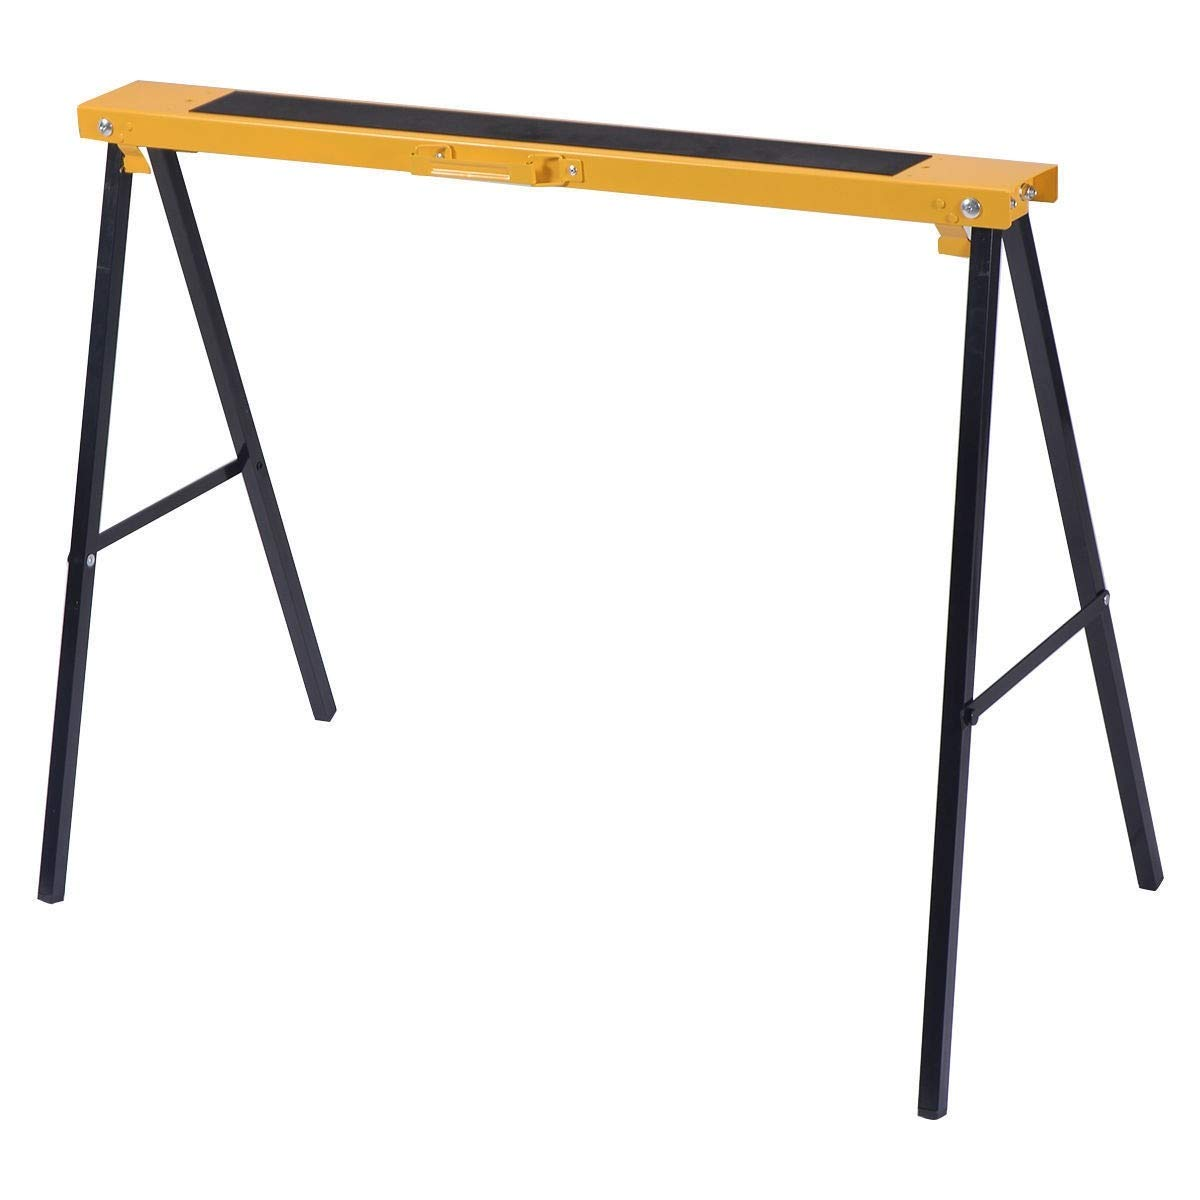 Sawhorse Heavy Duty Folding 2 Pack Steel Portable Saw Horse Legs Pair Workshop MD Group by MD Group (Image #4)